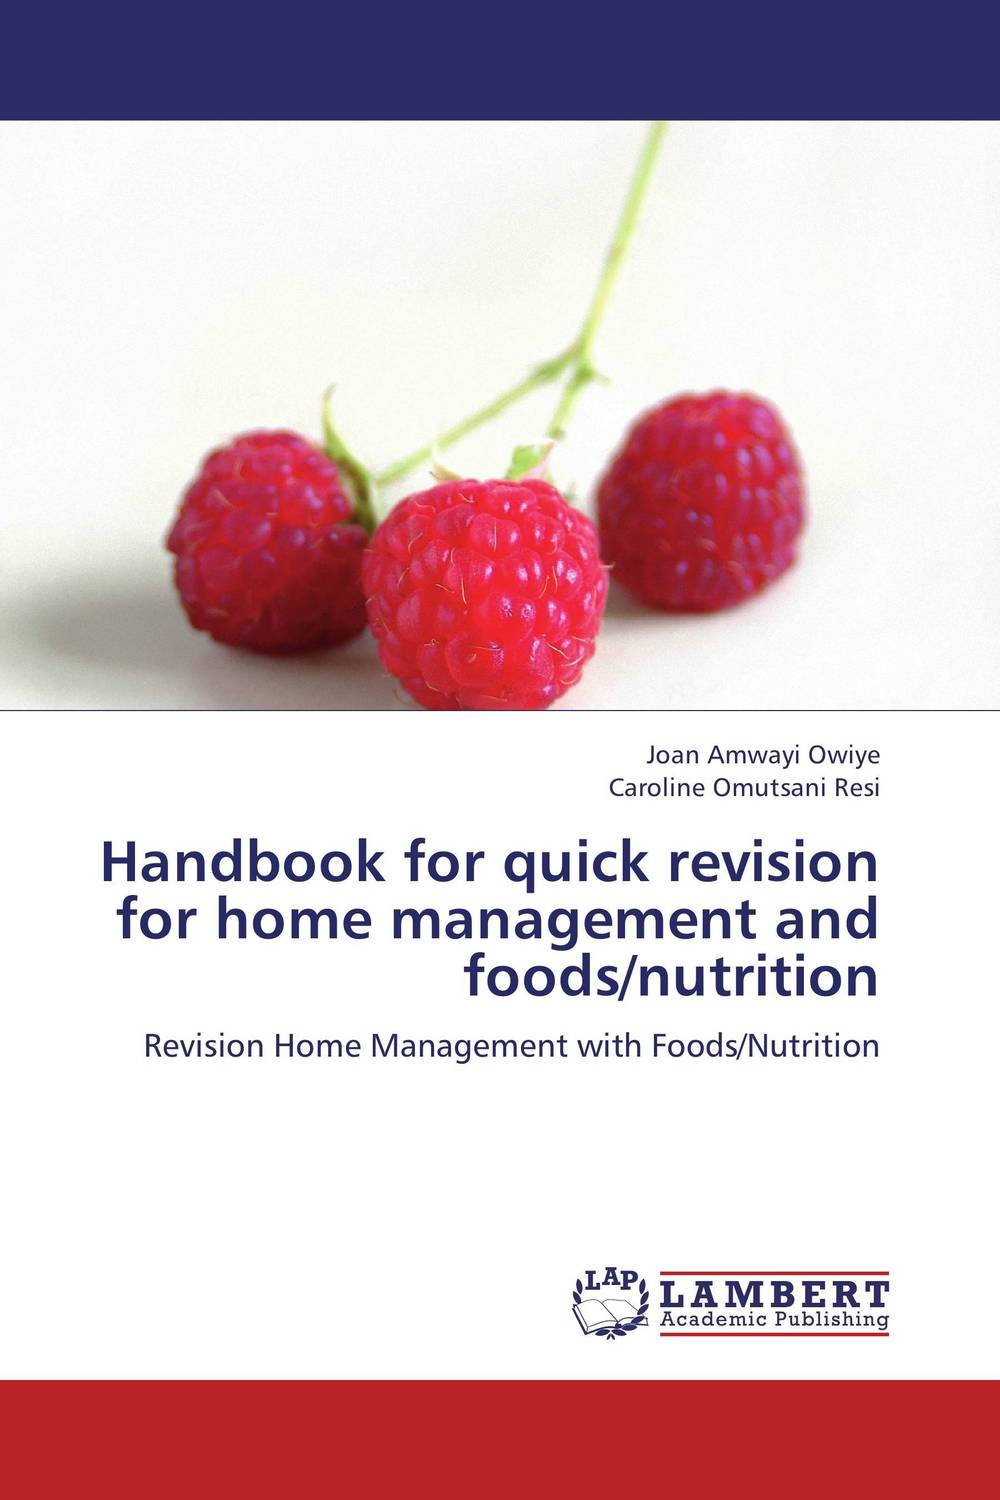 цена на Handbook for quick revision for home management and foods/nutrition